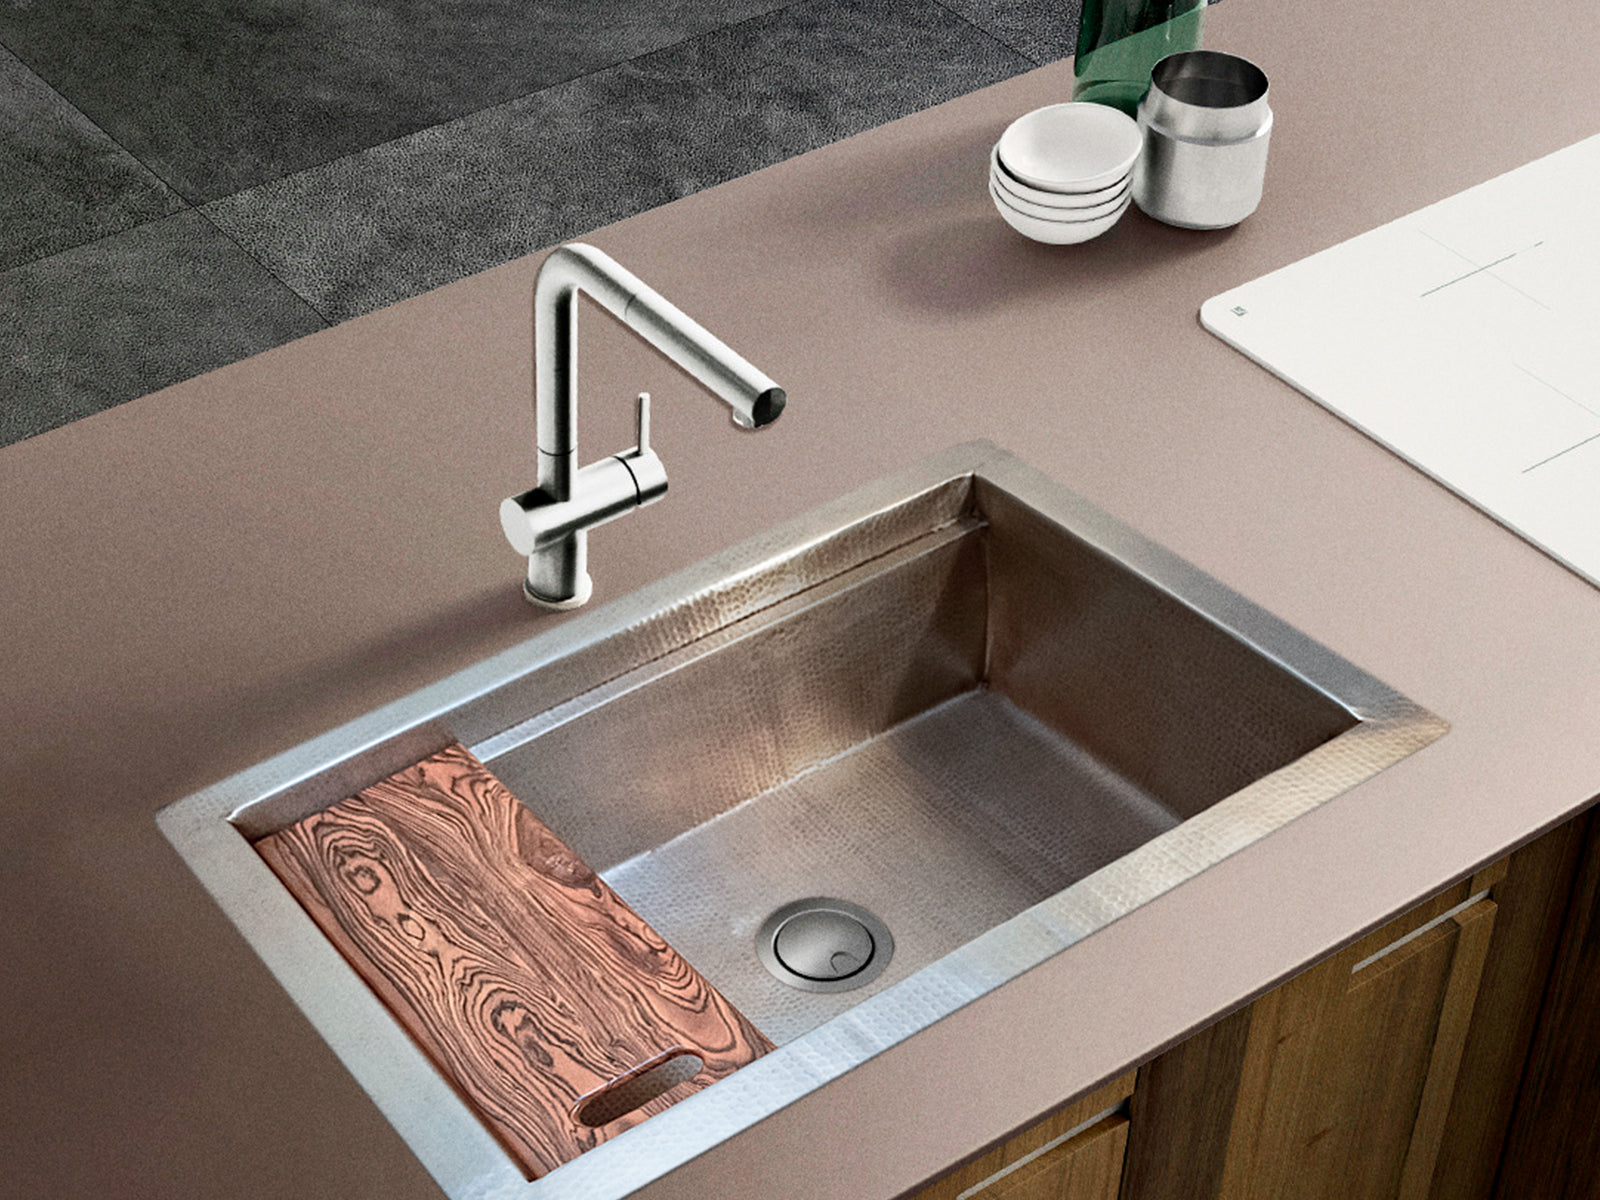 Alpaca Kitchen Sink for Griding